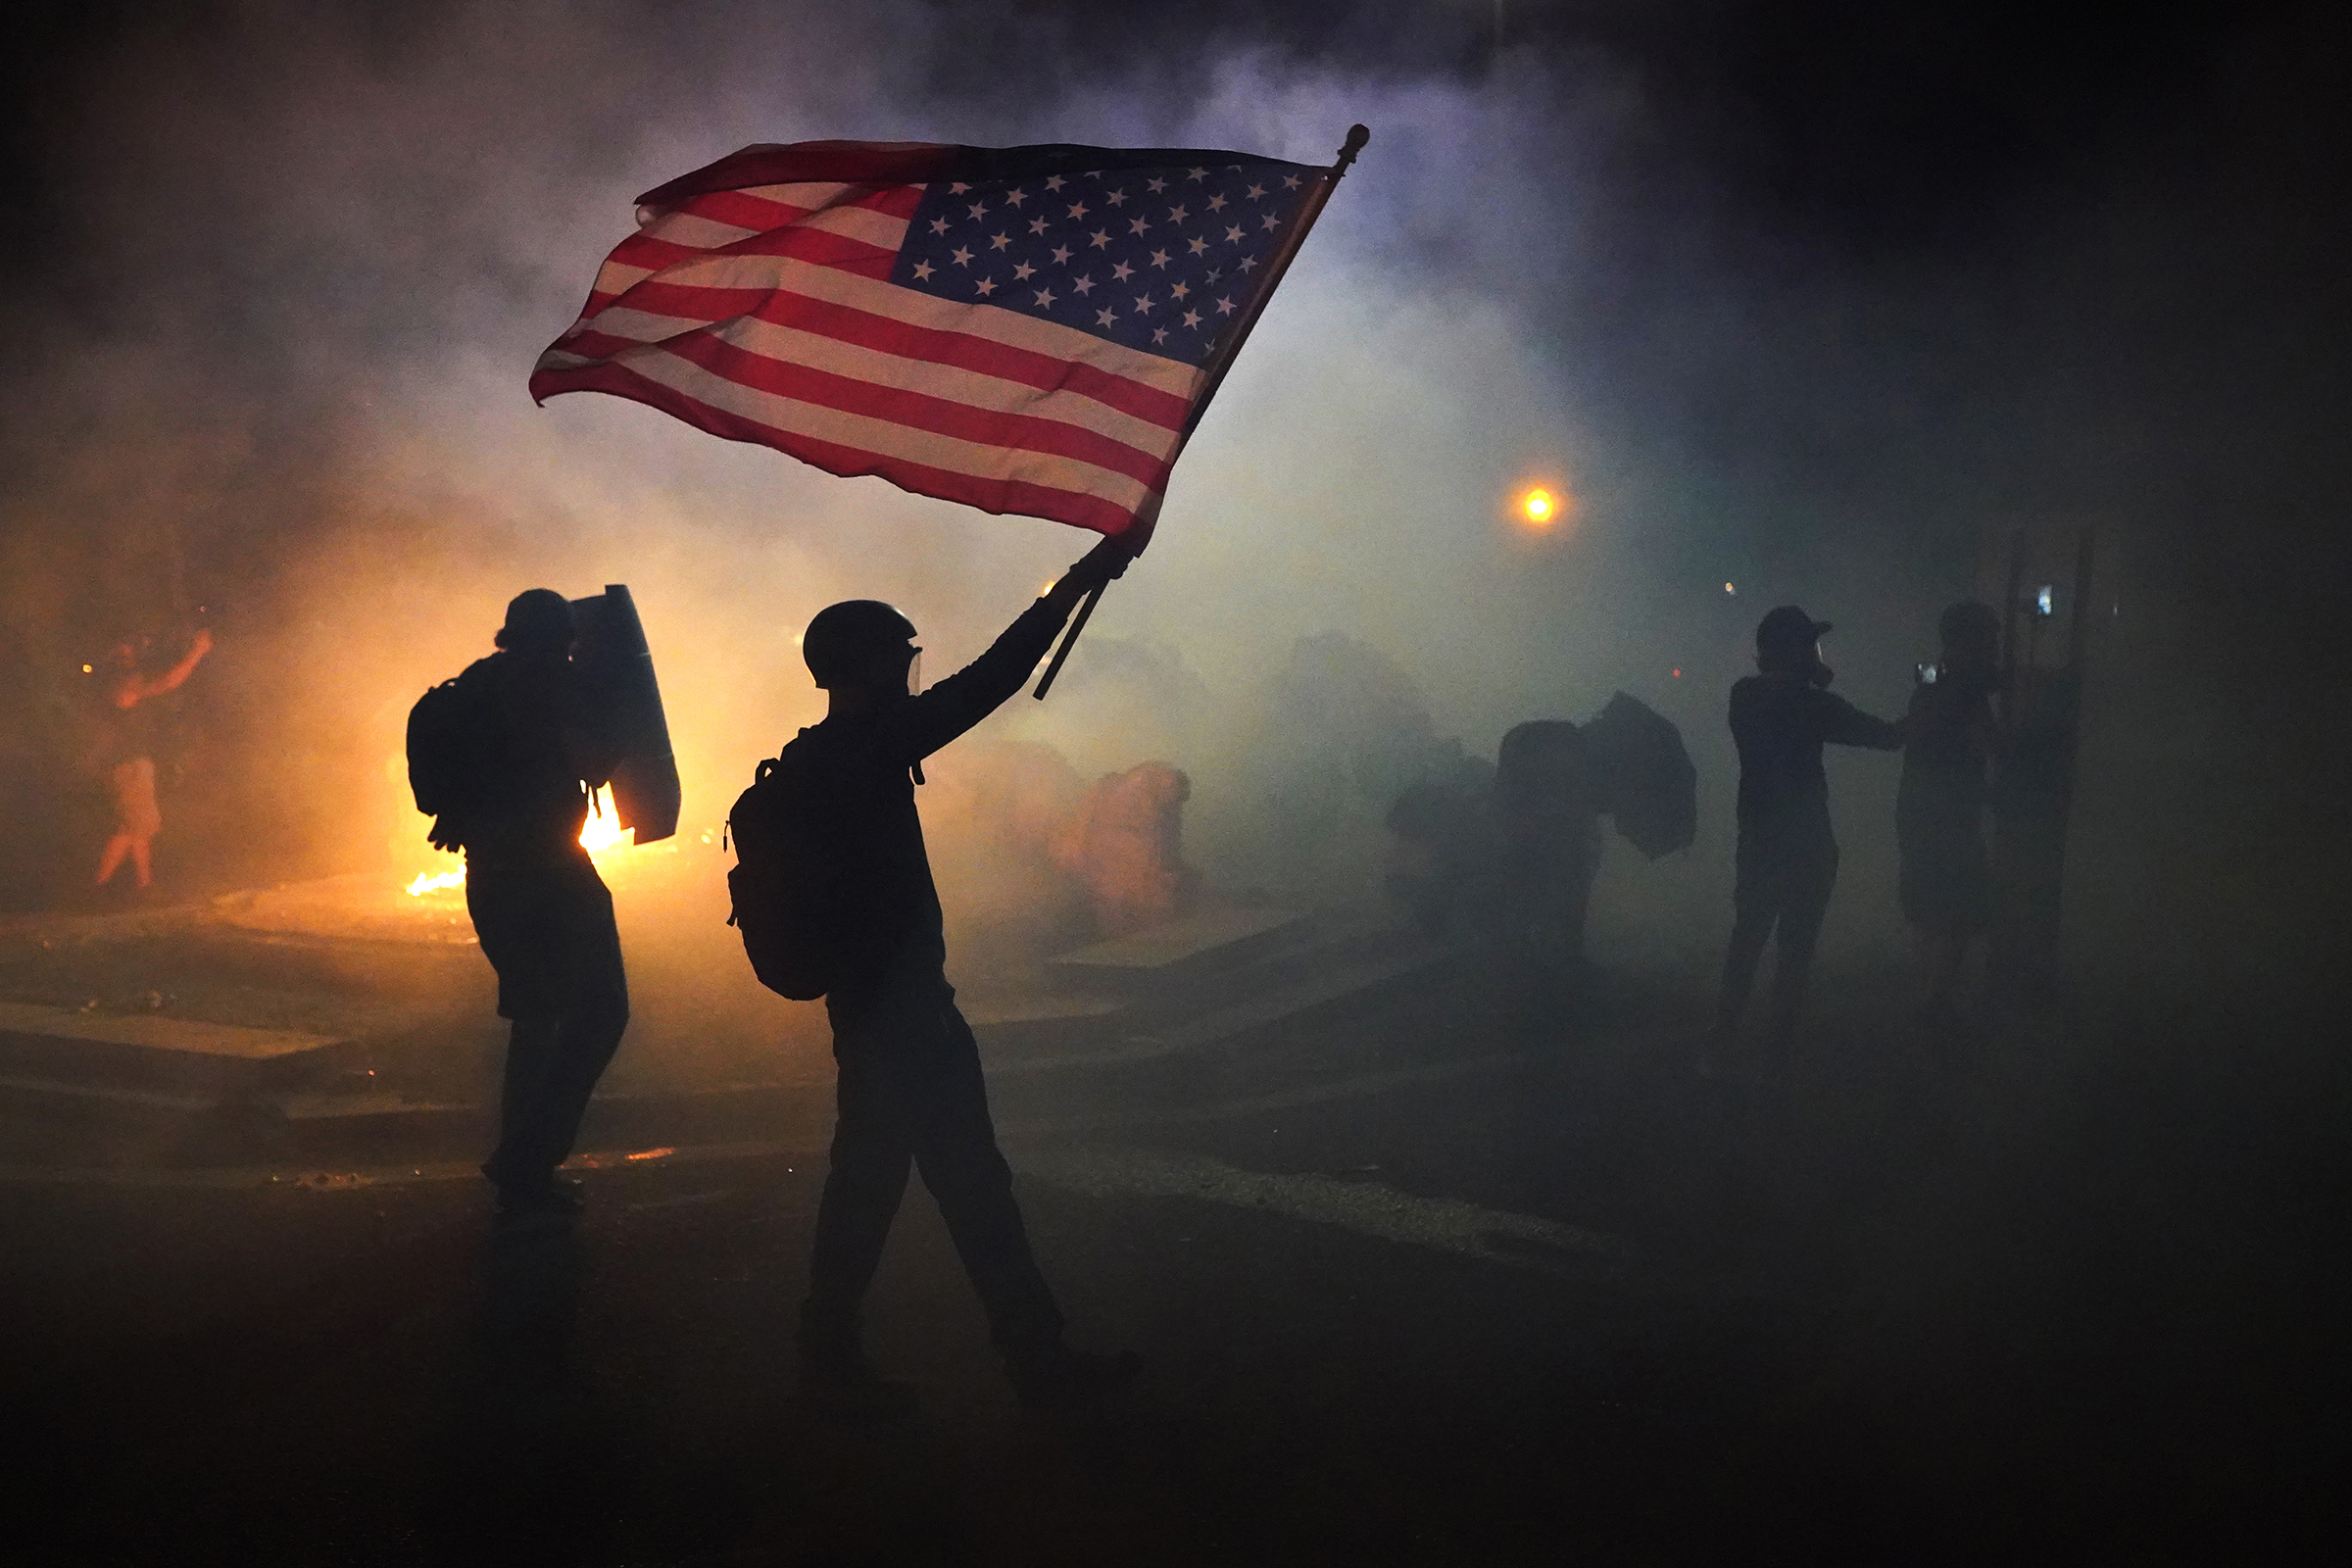 A protester flies an American flag while walking through tear gas fired by federal officers during a protest in Portland, Oregon on July 21, 2020.